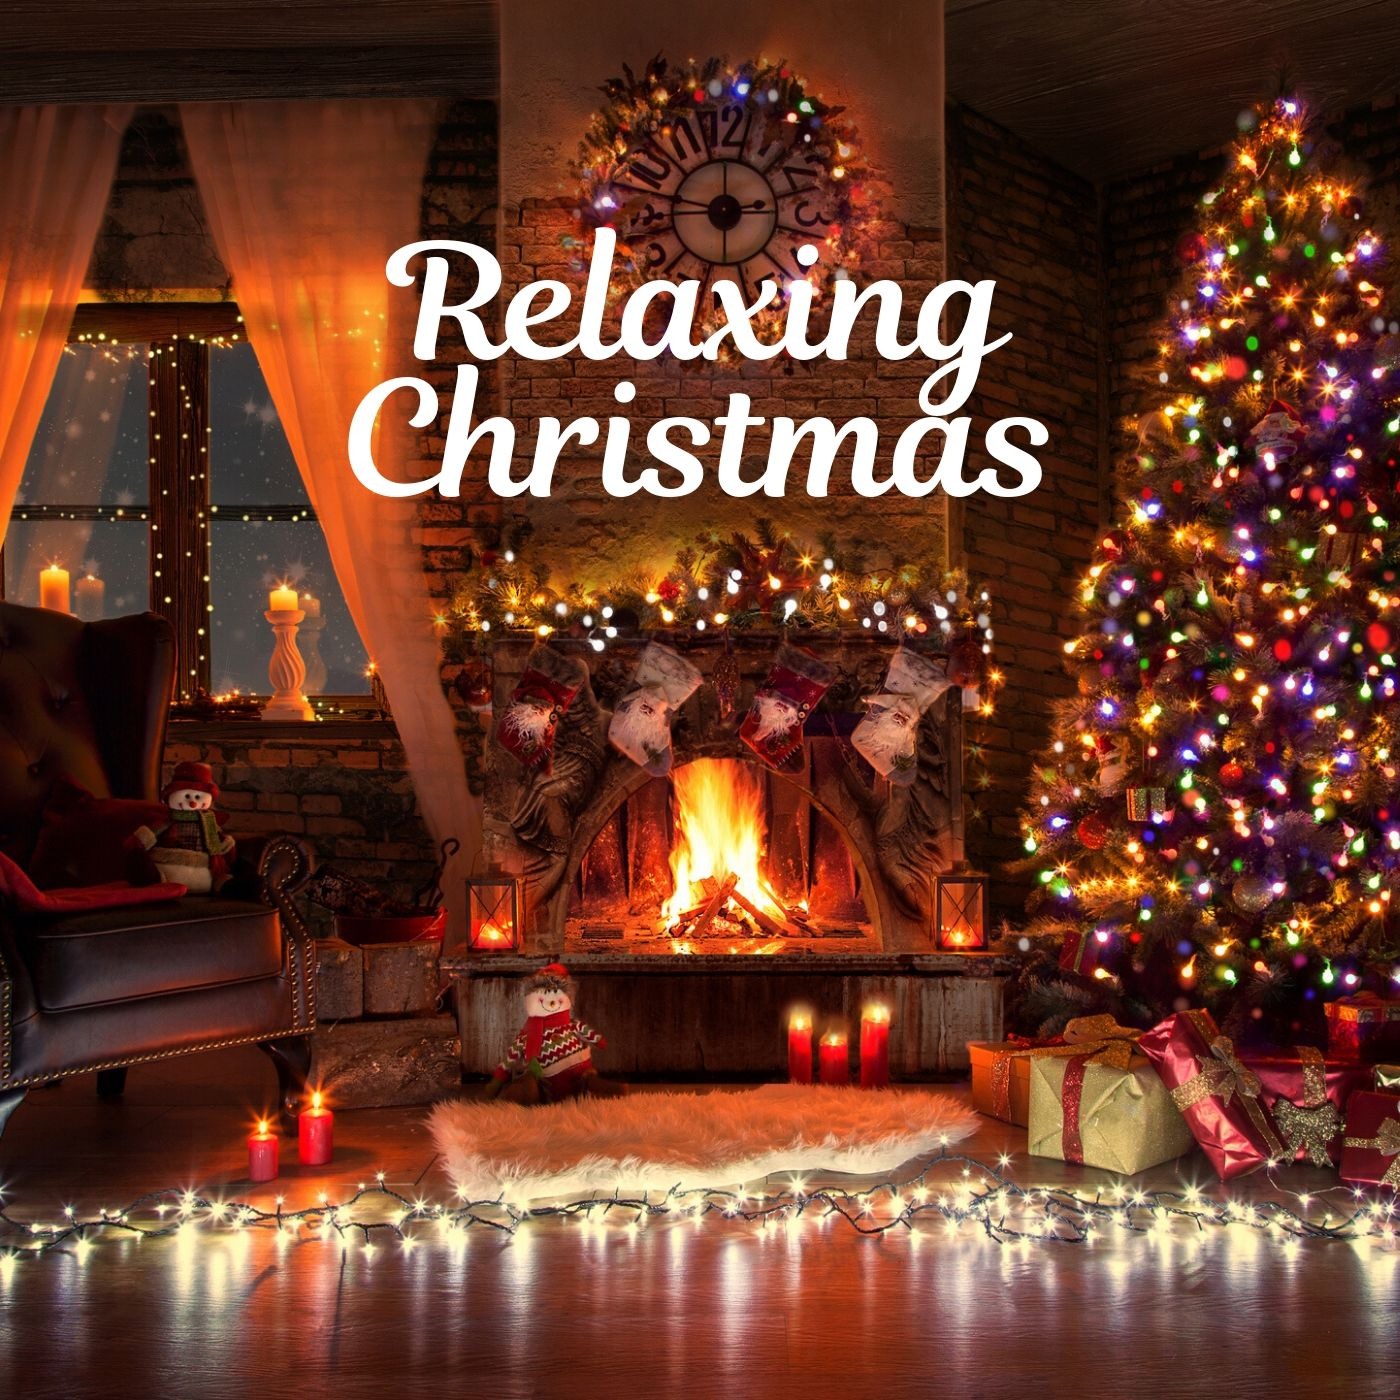 Relaxing Christmas Music & Songs